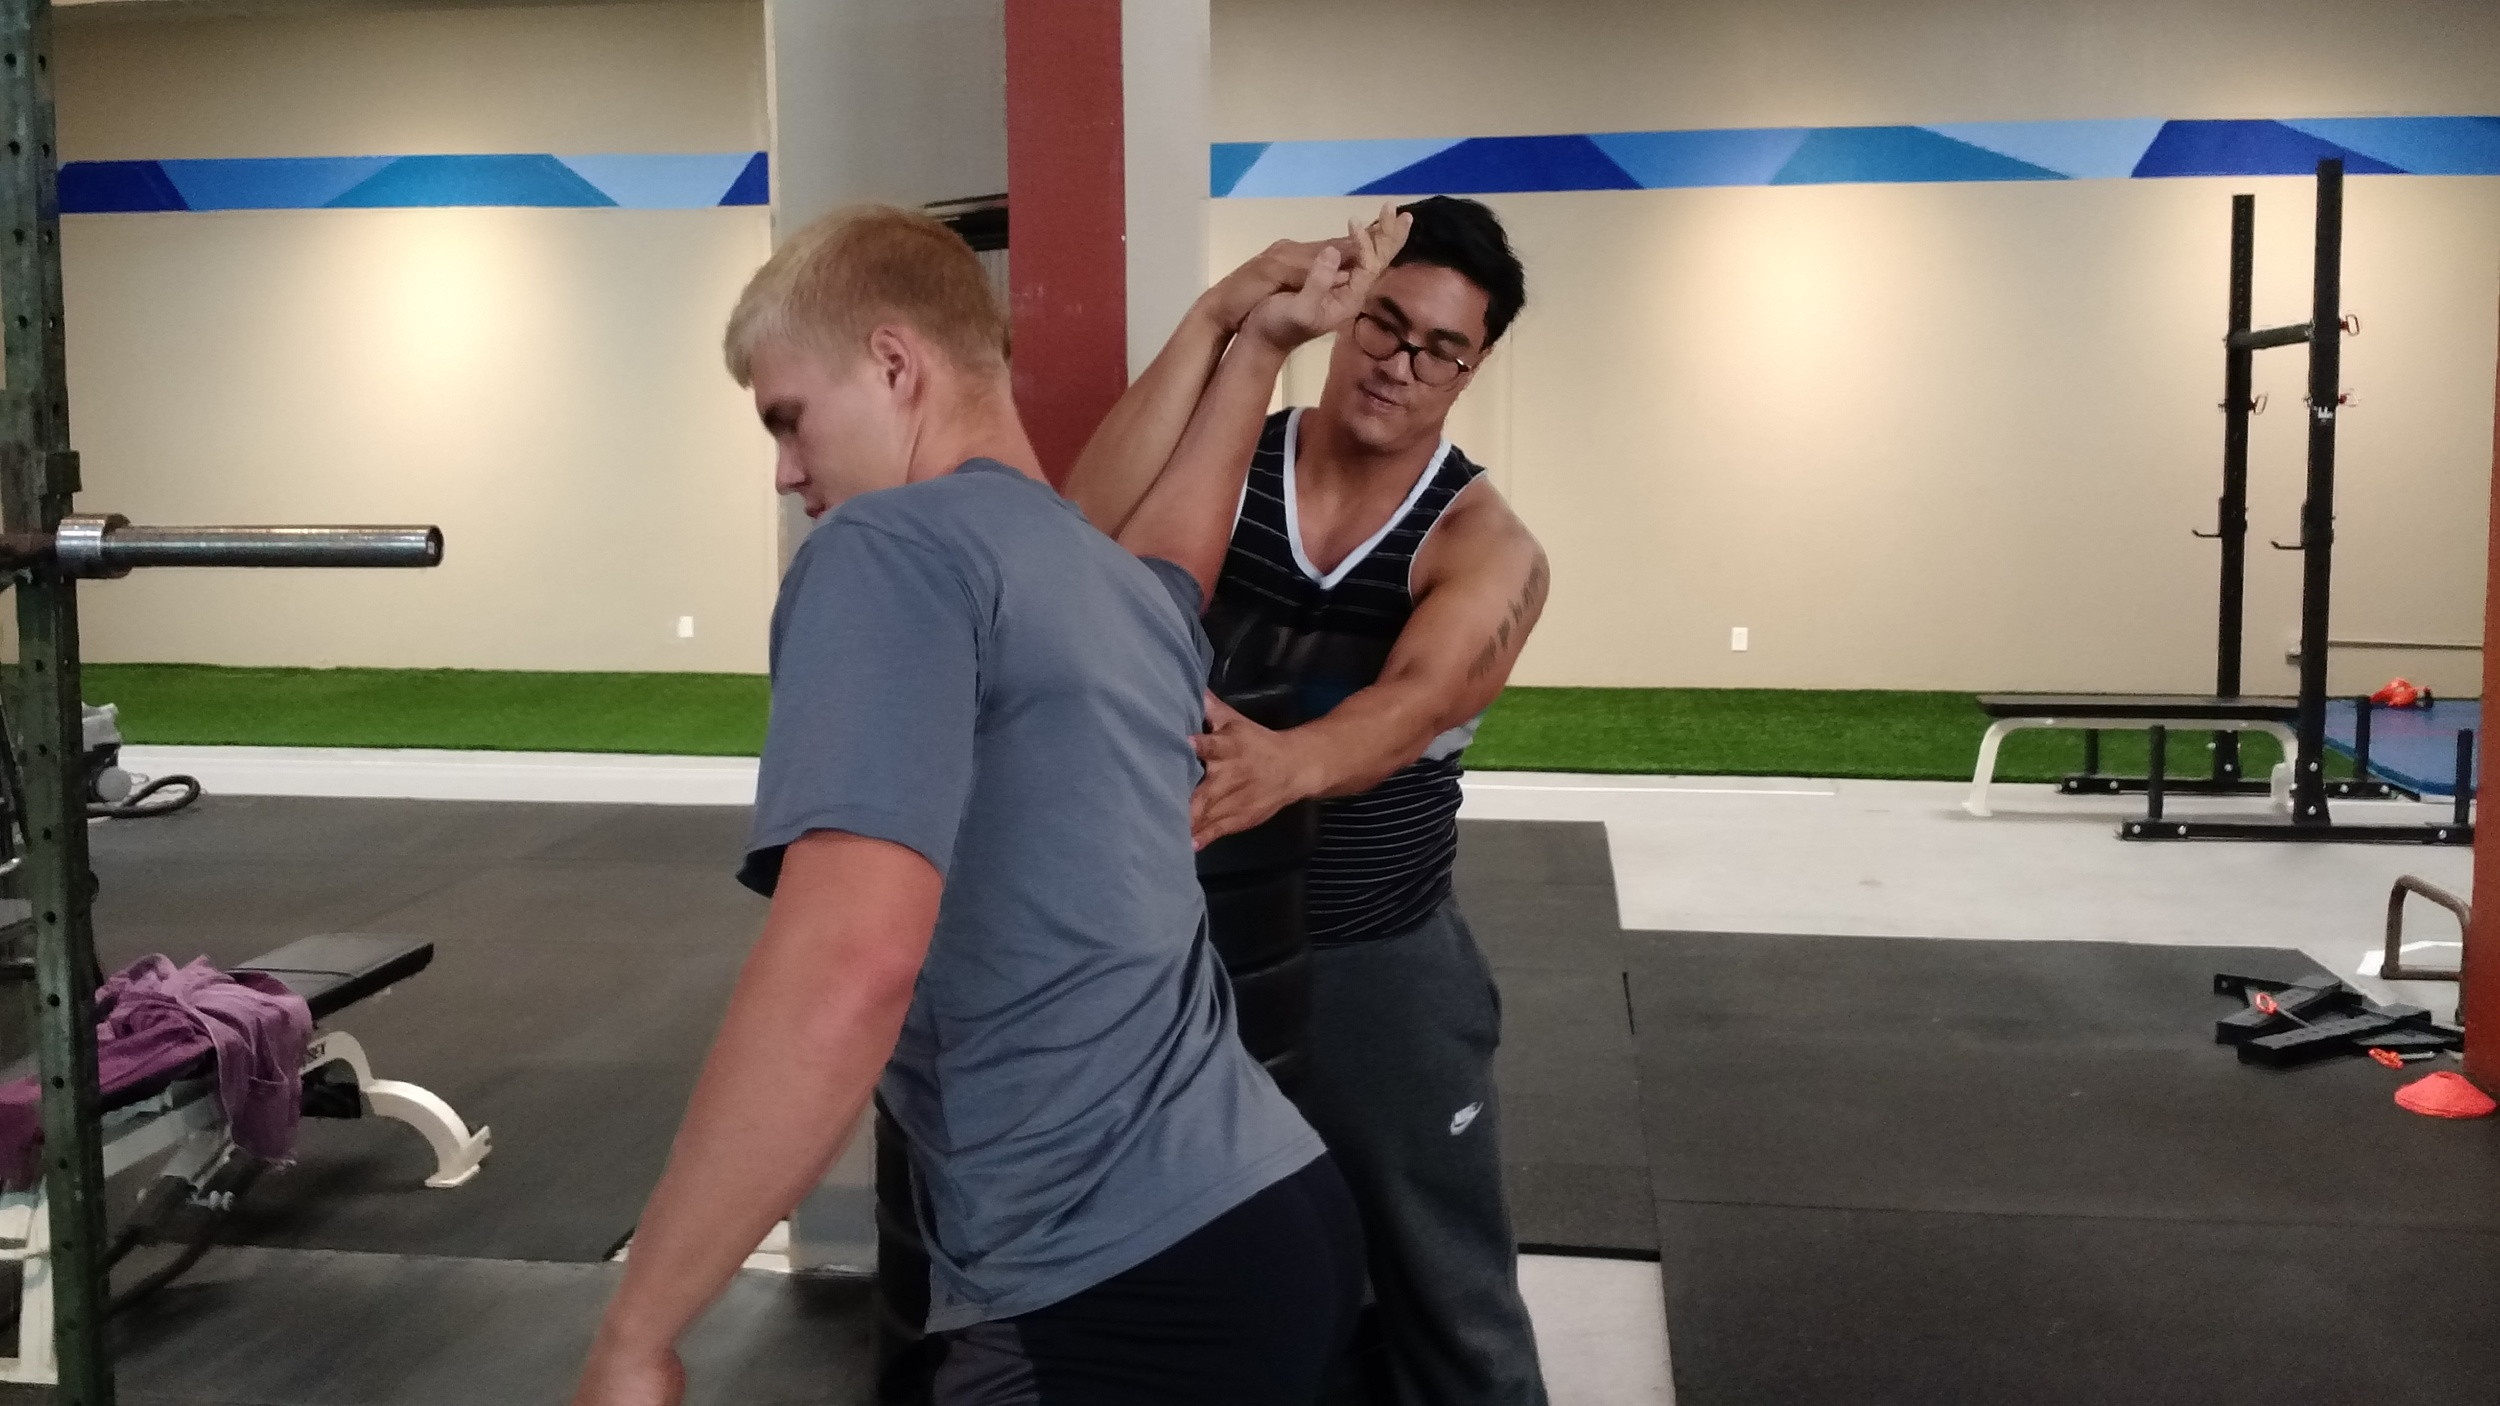 During Sunday's RESTORE! class, coach Raymond works on CJs shoulder mobility especially helping his cleans and front rack positioning.